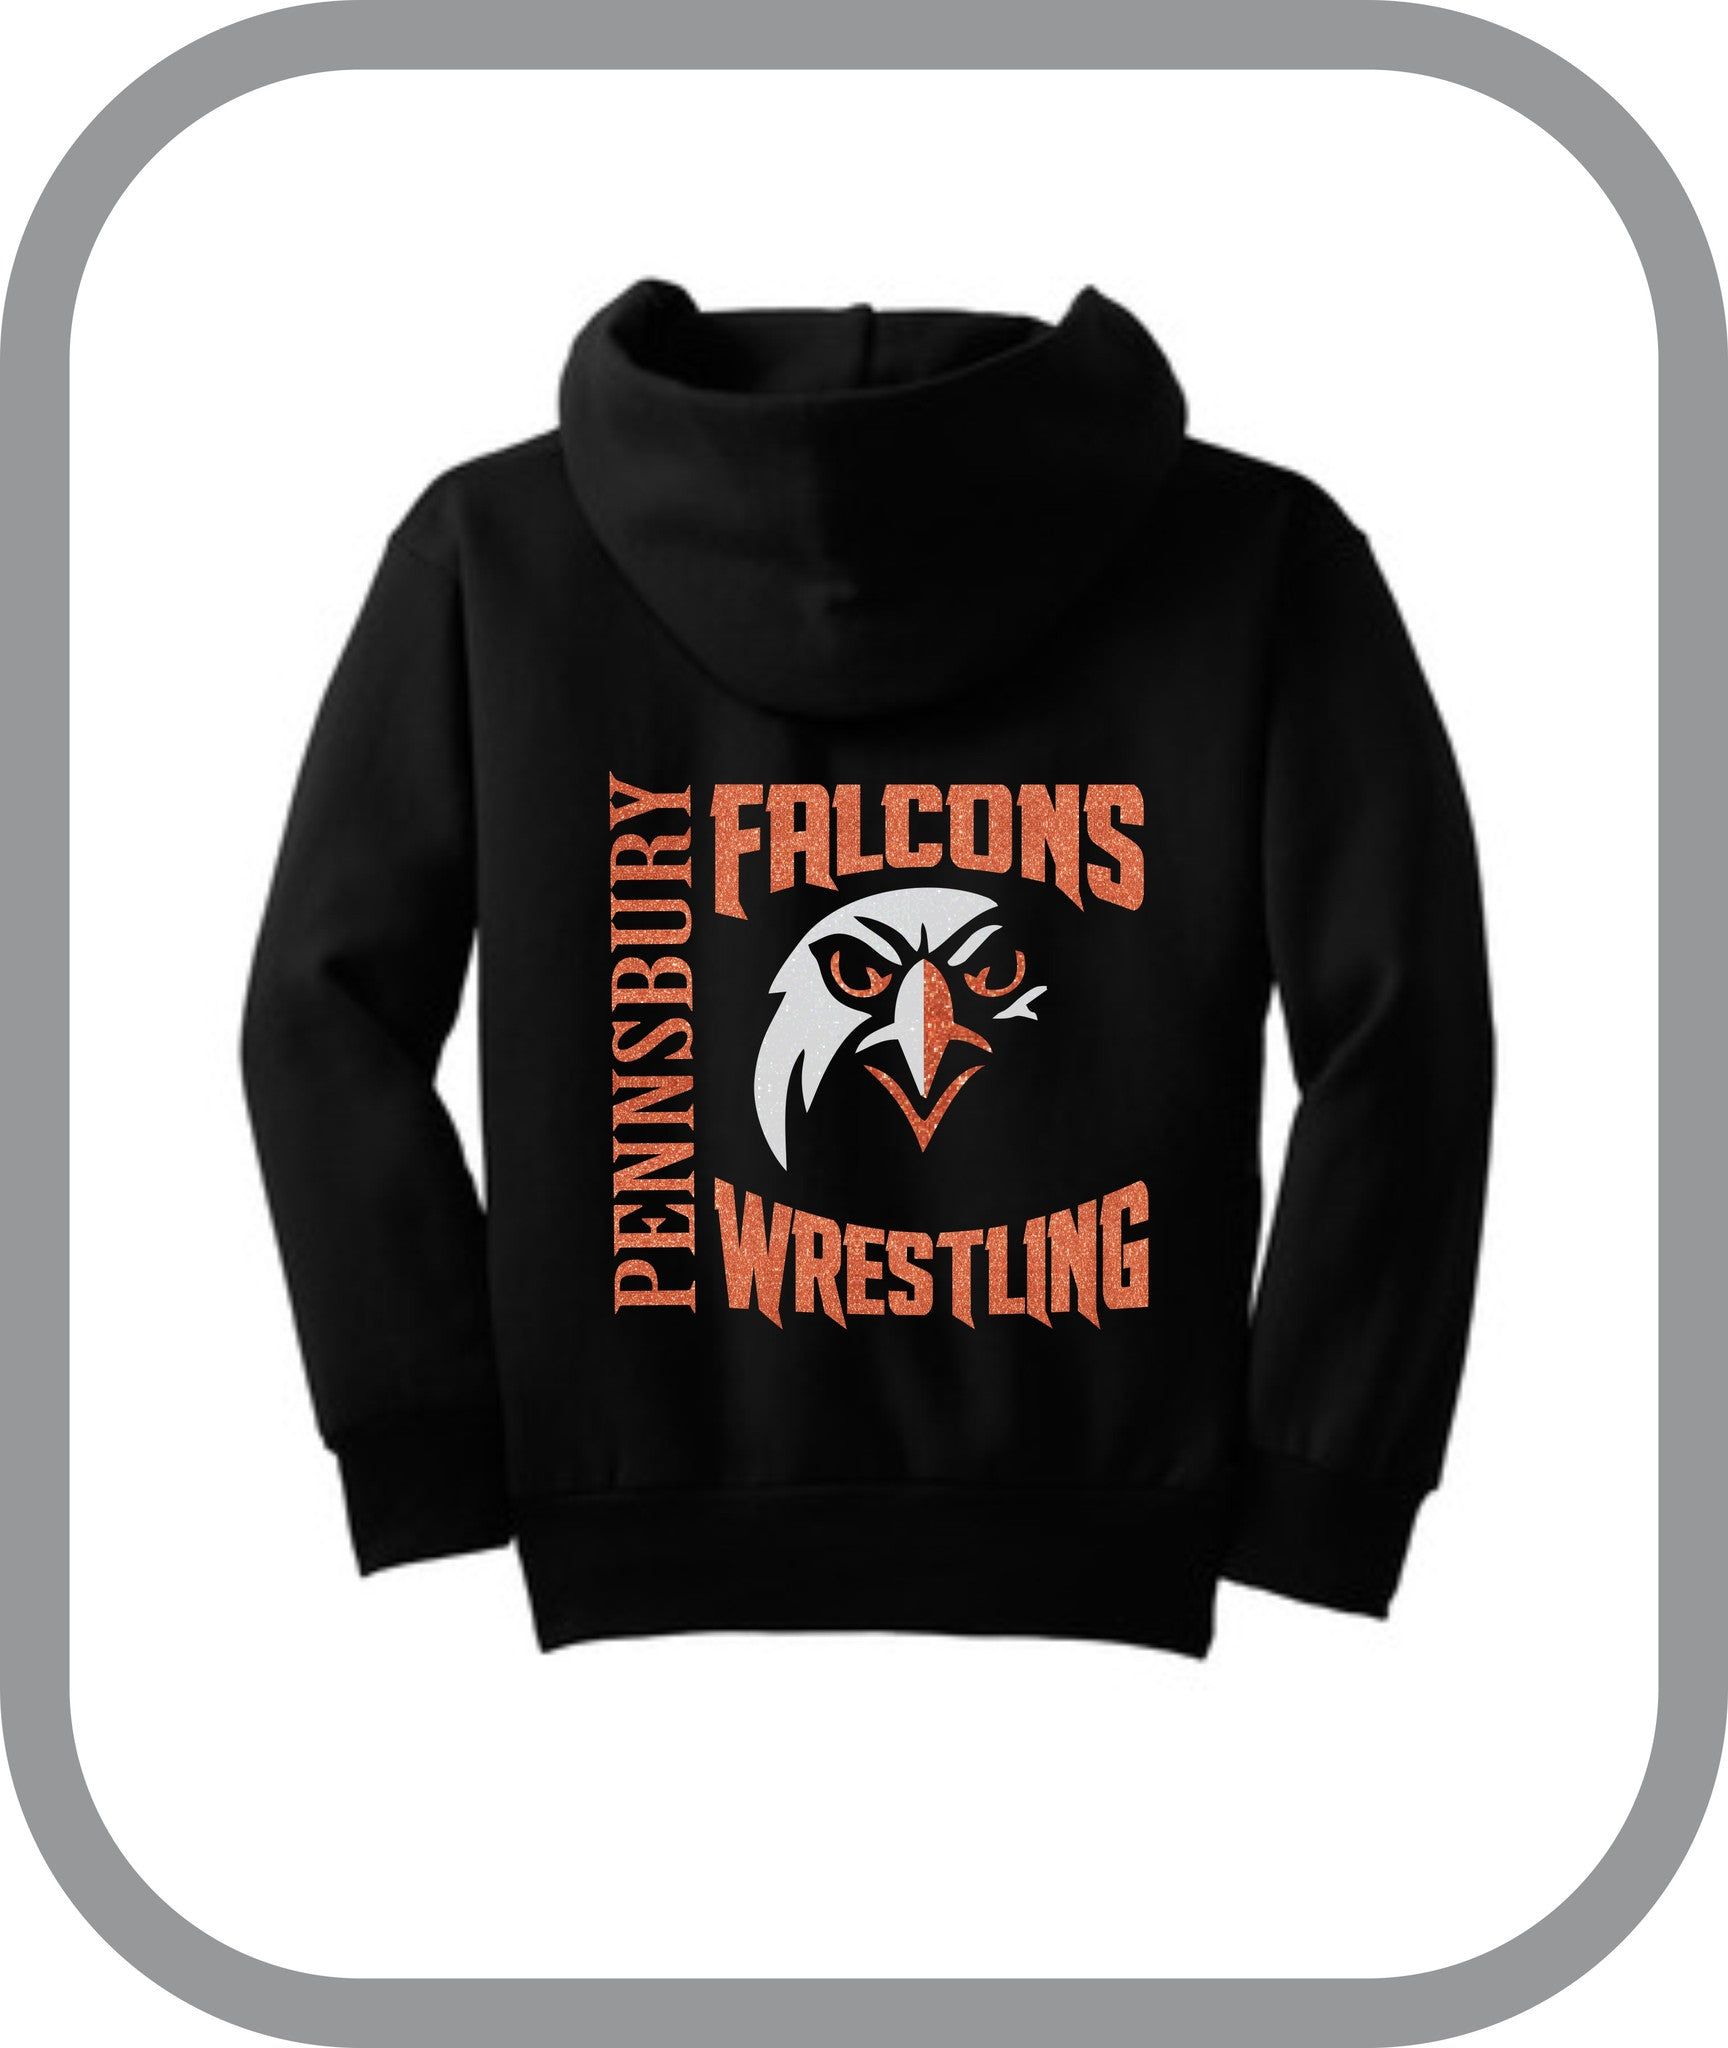 Falcons Wrestling - Girls Zip Up Hoodies with choice of design